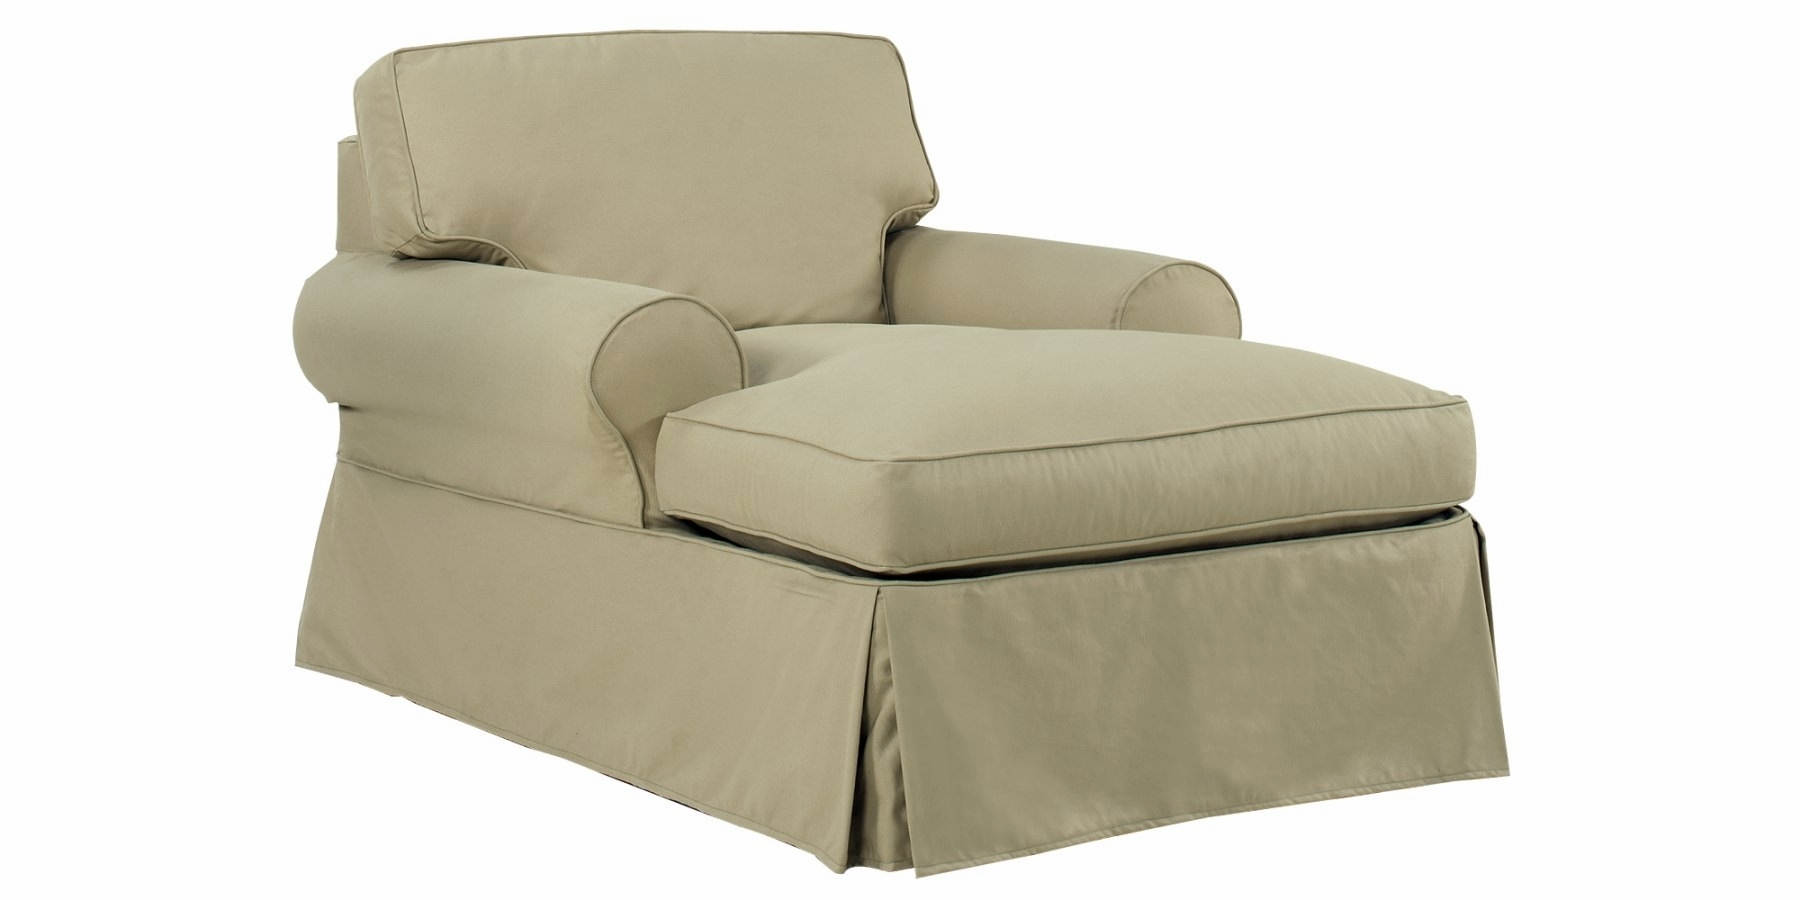 Sofa With Chaise Lounge Slipcover Hereo Sofa Inside Chaise Sofa Covers (Image 14 of 15)